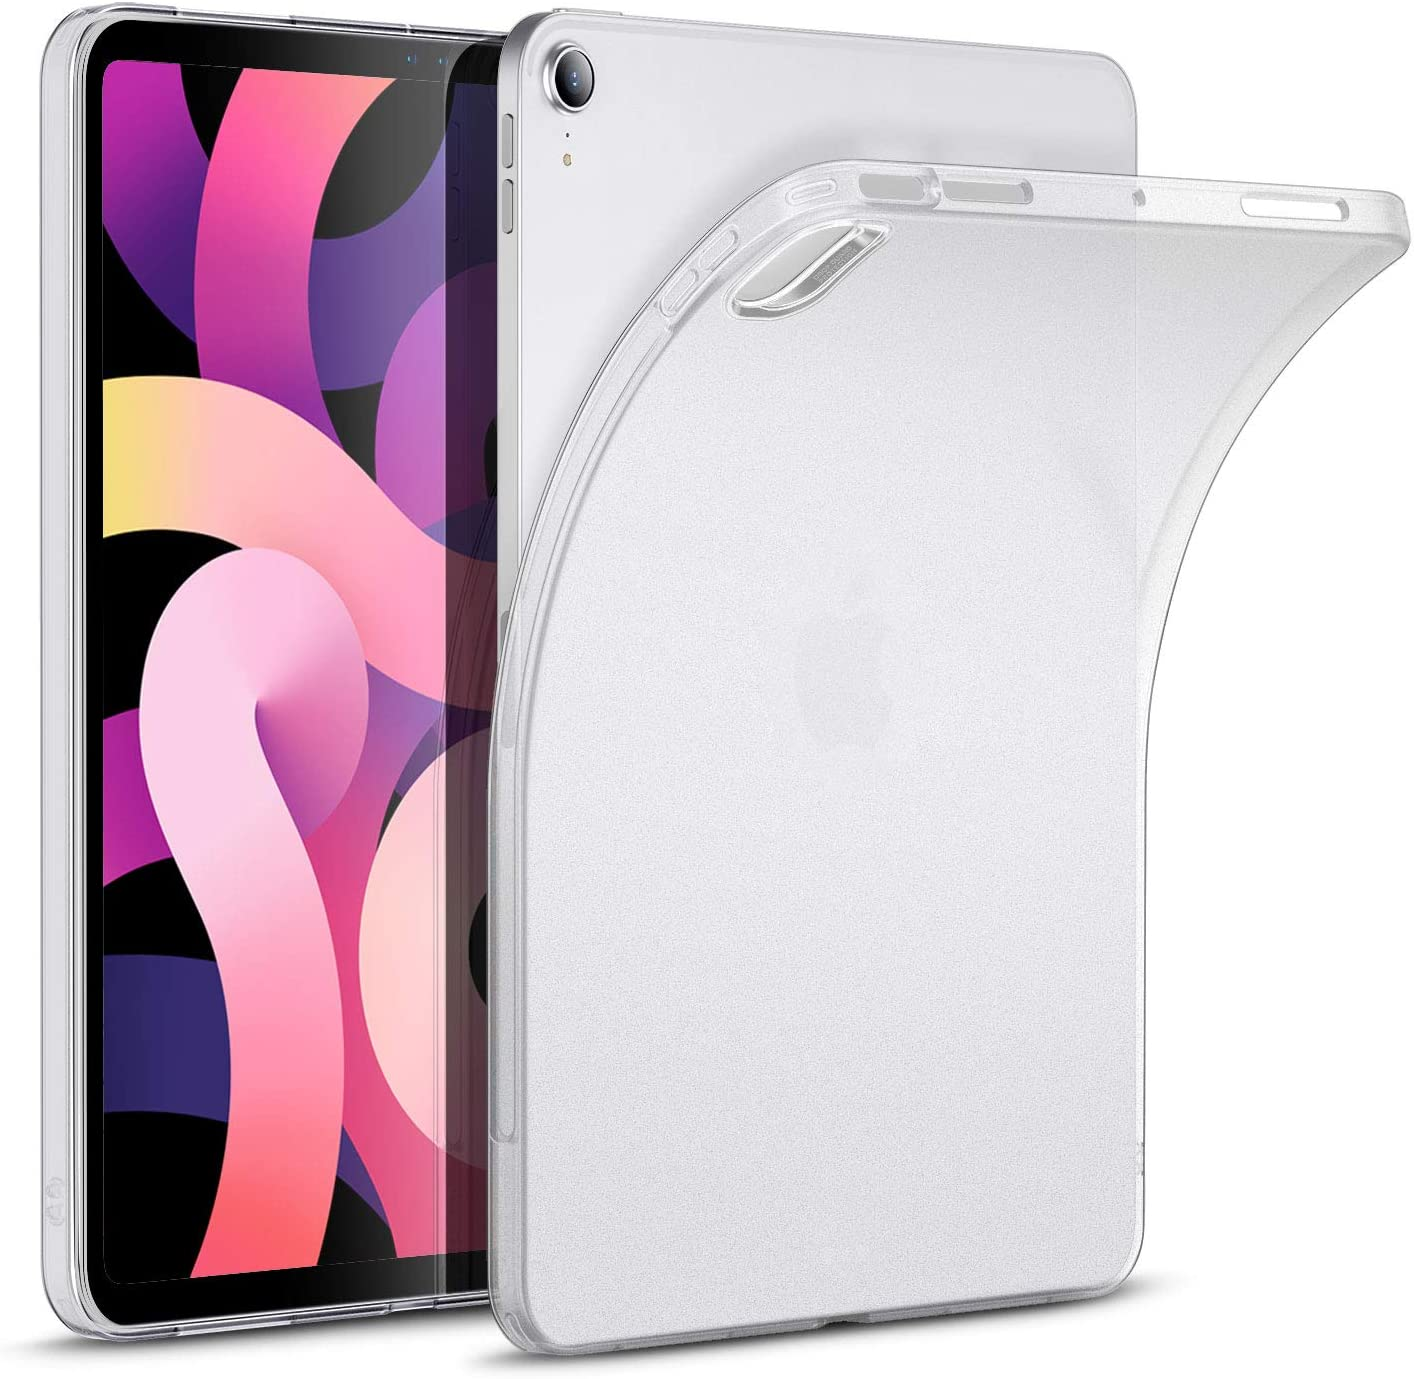 ESR Matte Case for iPad Air 4 2020 10.9 Inch [Translucent Back Cover] [Supports Pencil Wireless Charging] - Matte White